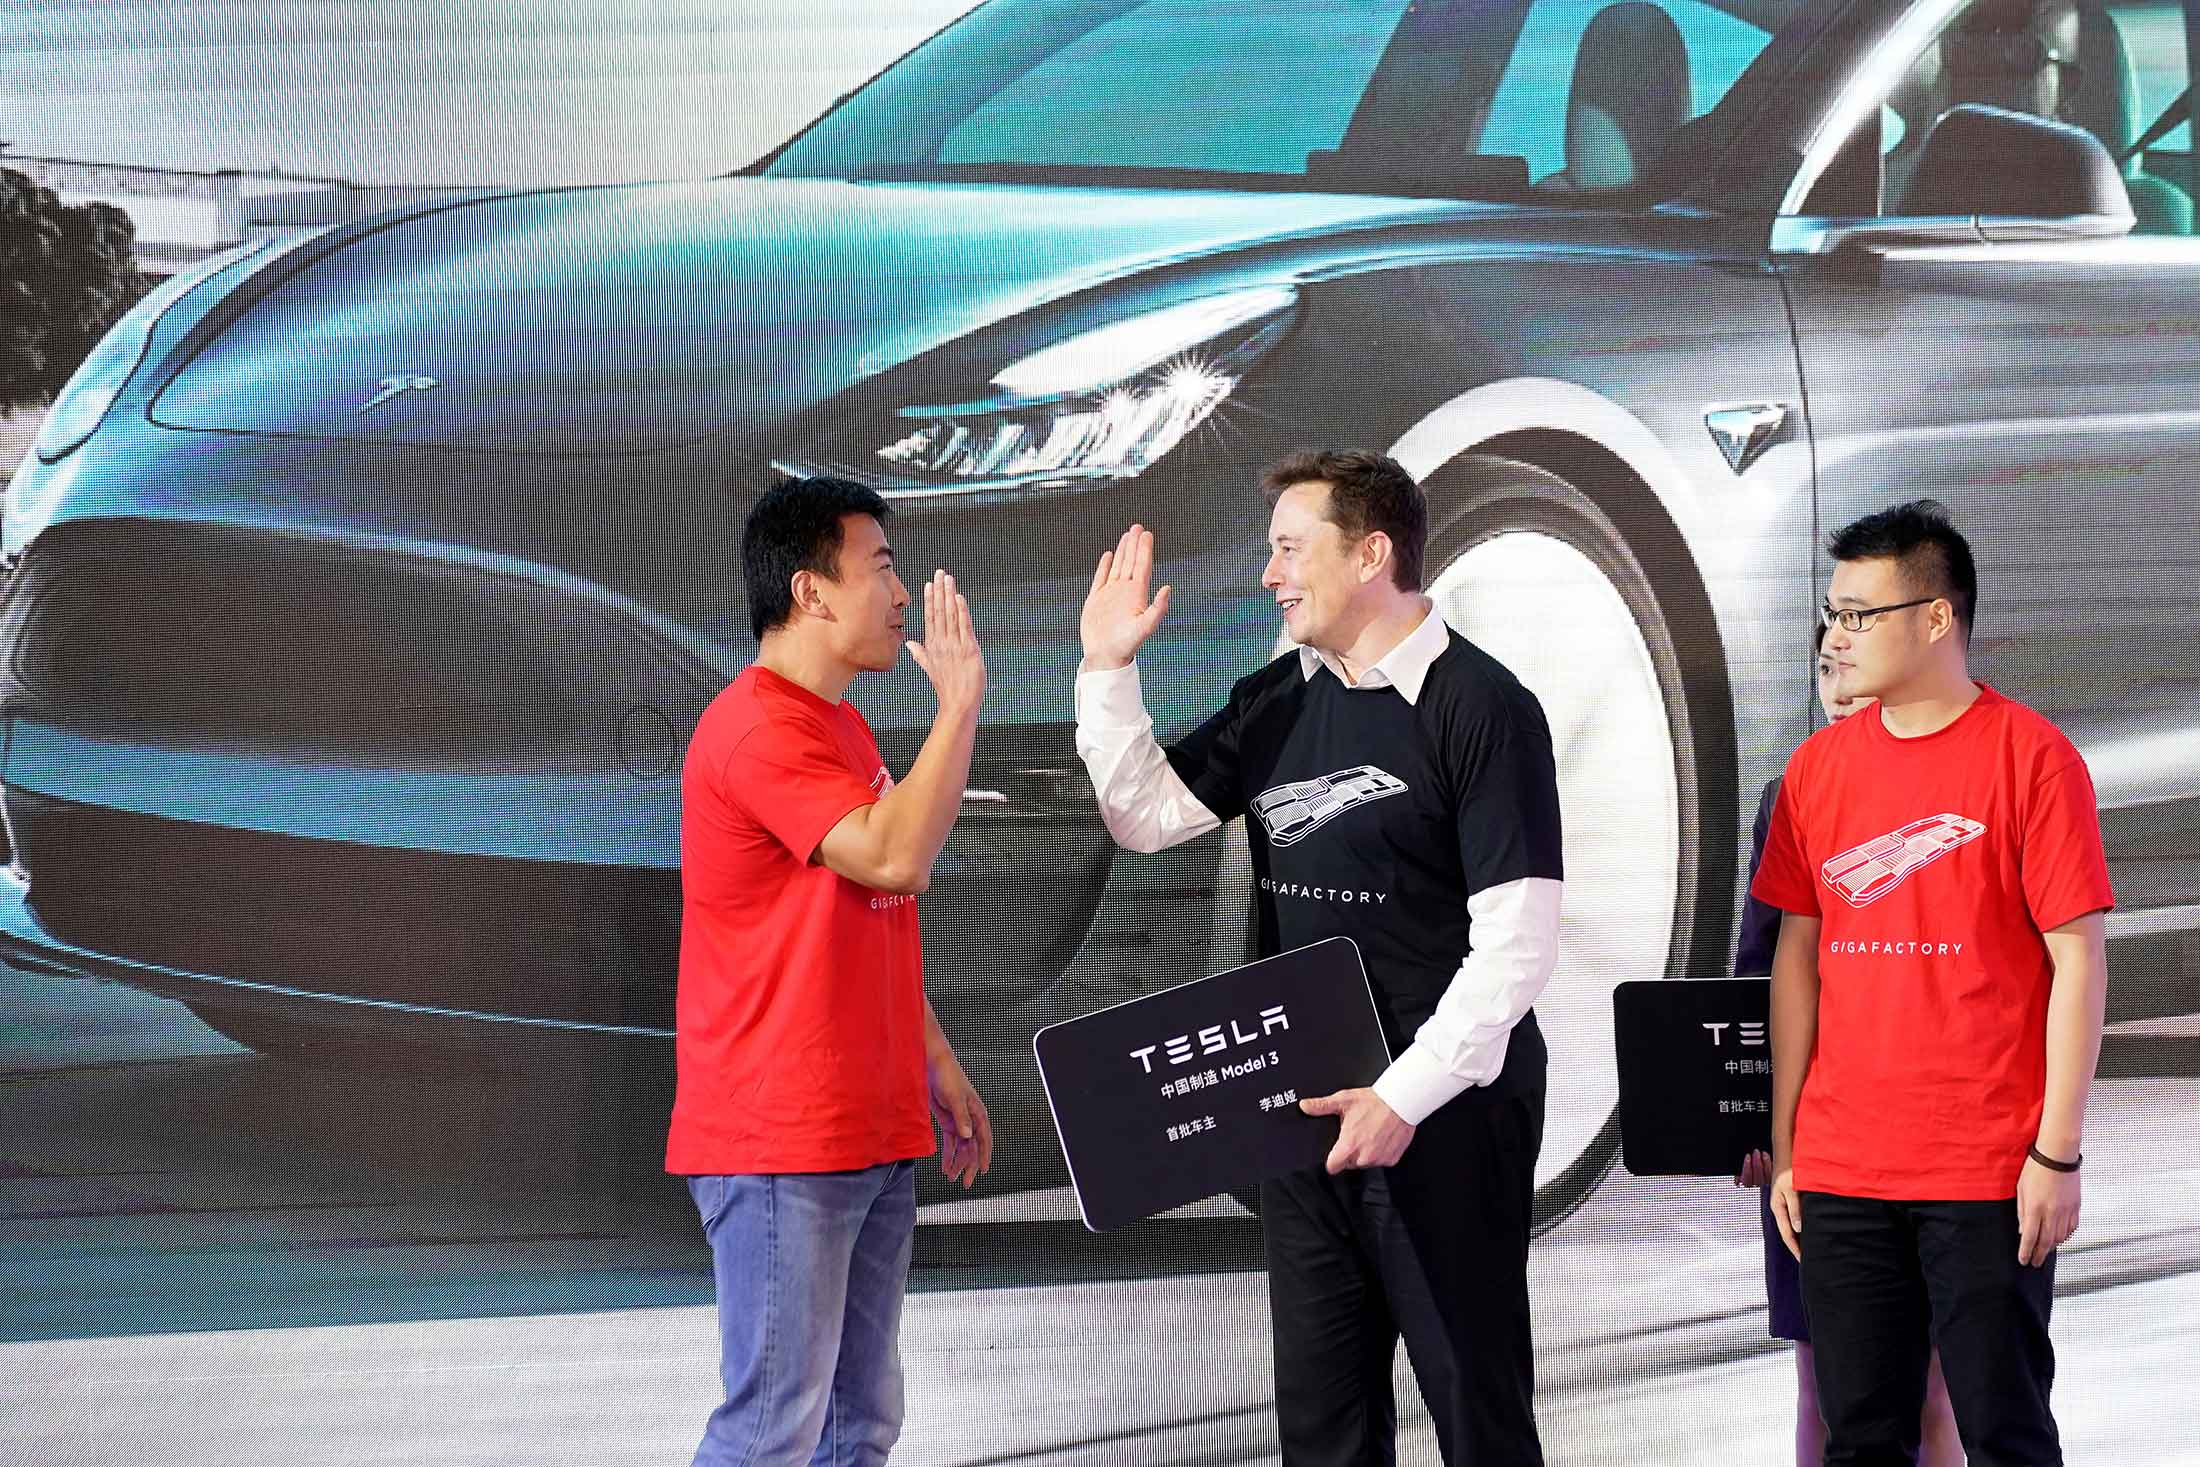 Musk greeting Model 3 vehicle owners in Shanghai. Photographer: Aly Song/Reuters